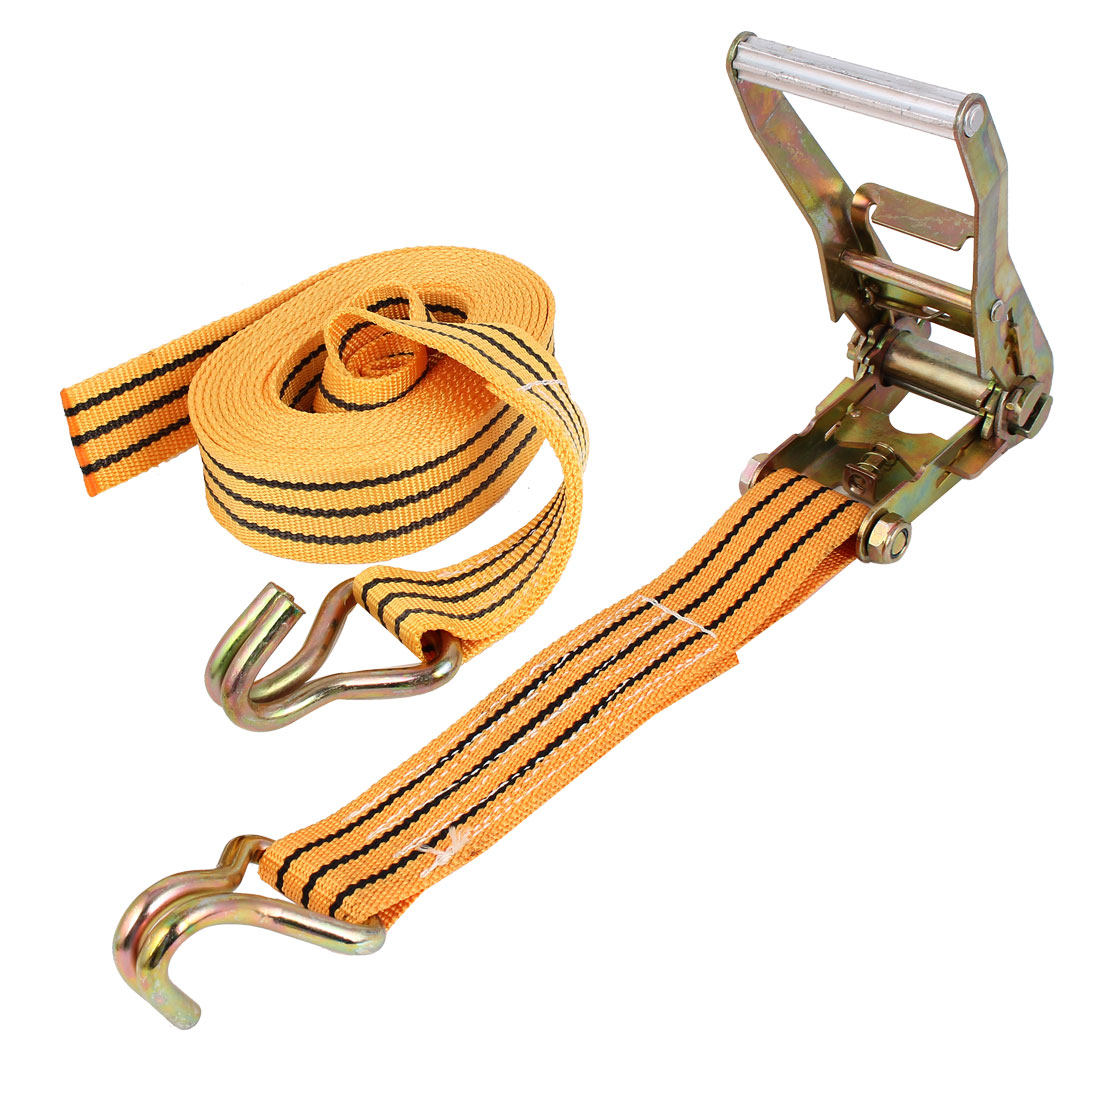 Luggage Binding Double Hooks 5000kg Breaking Strength Ratchet Tie Down Strap 6M